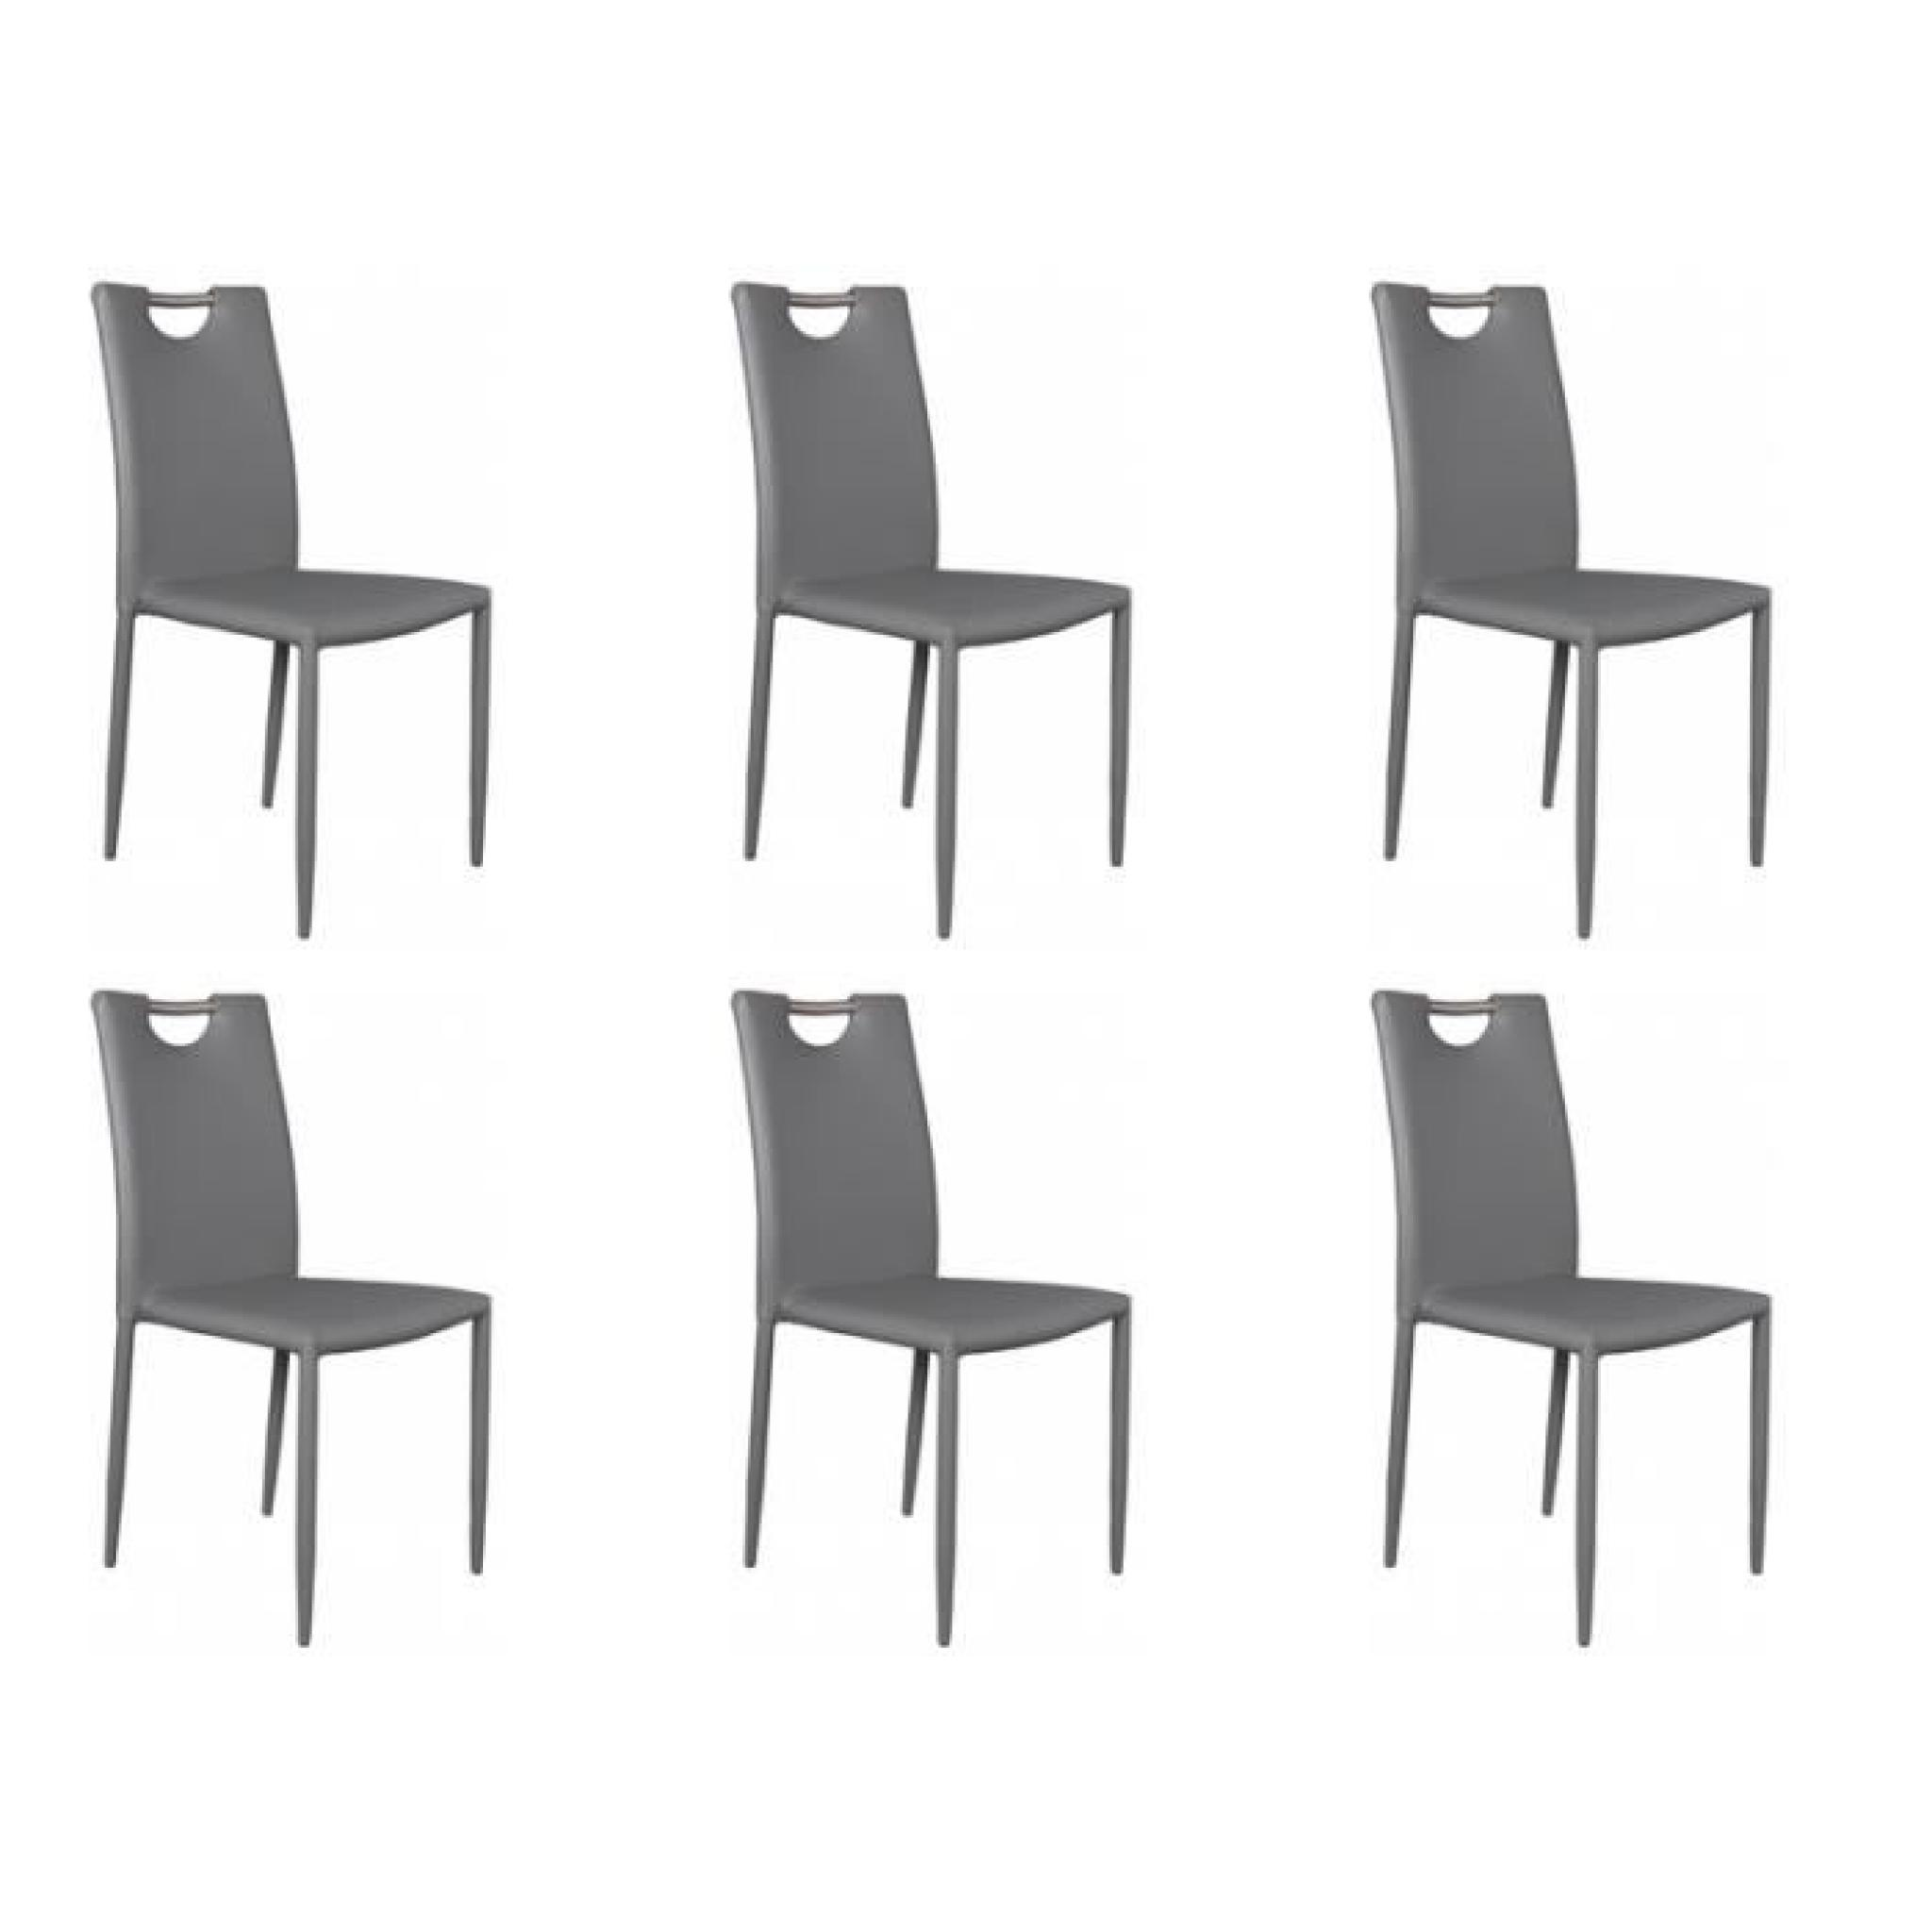 kira lot 6 chaises grises achat vente chaise salle a manger pas cher couleur et. Black Bedroom Furniture Sets. Home Design Ideas